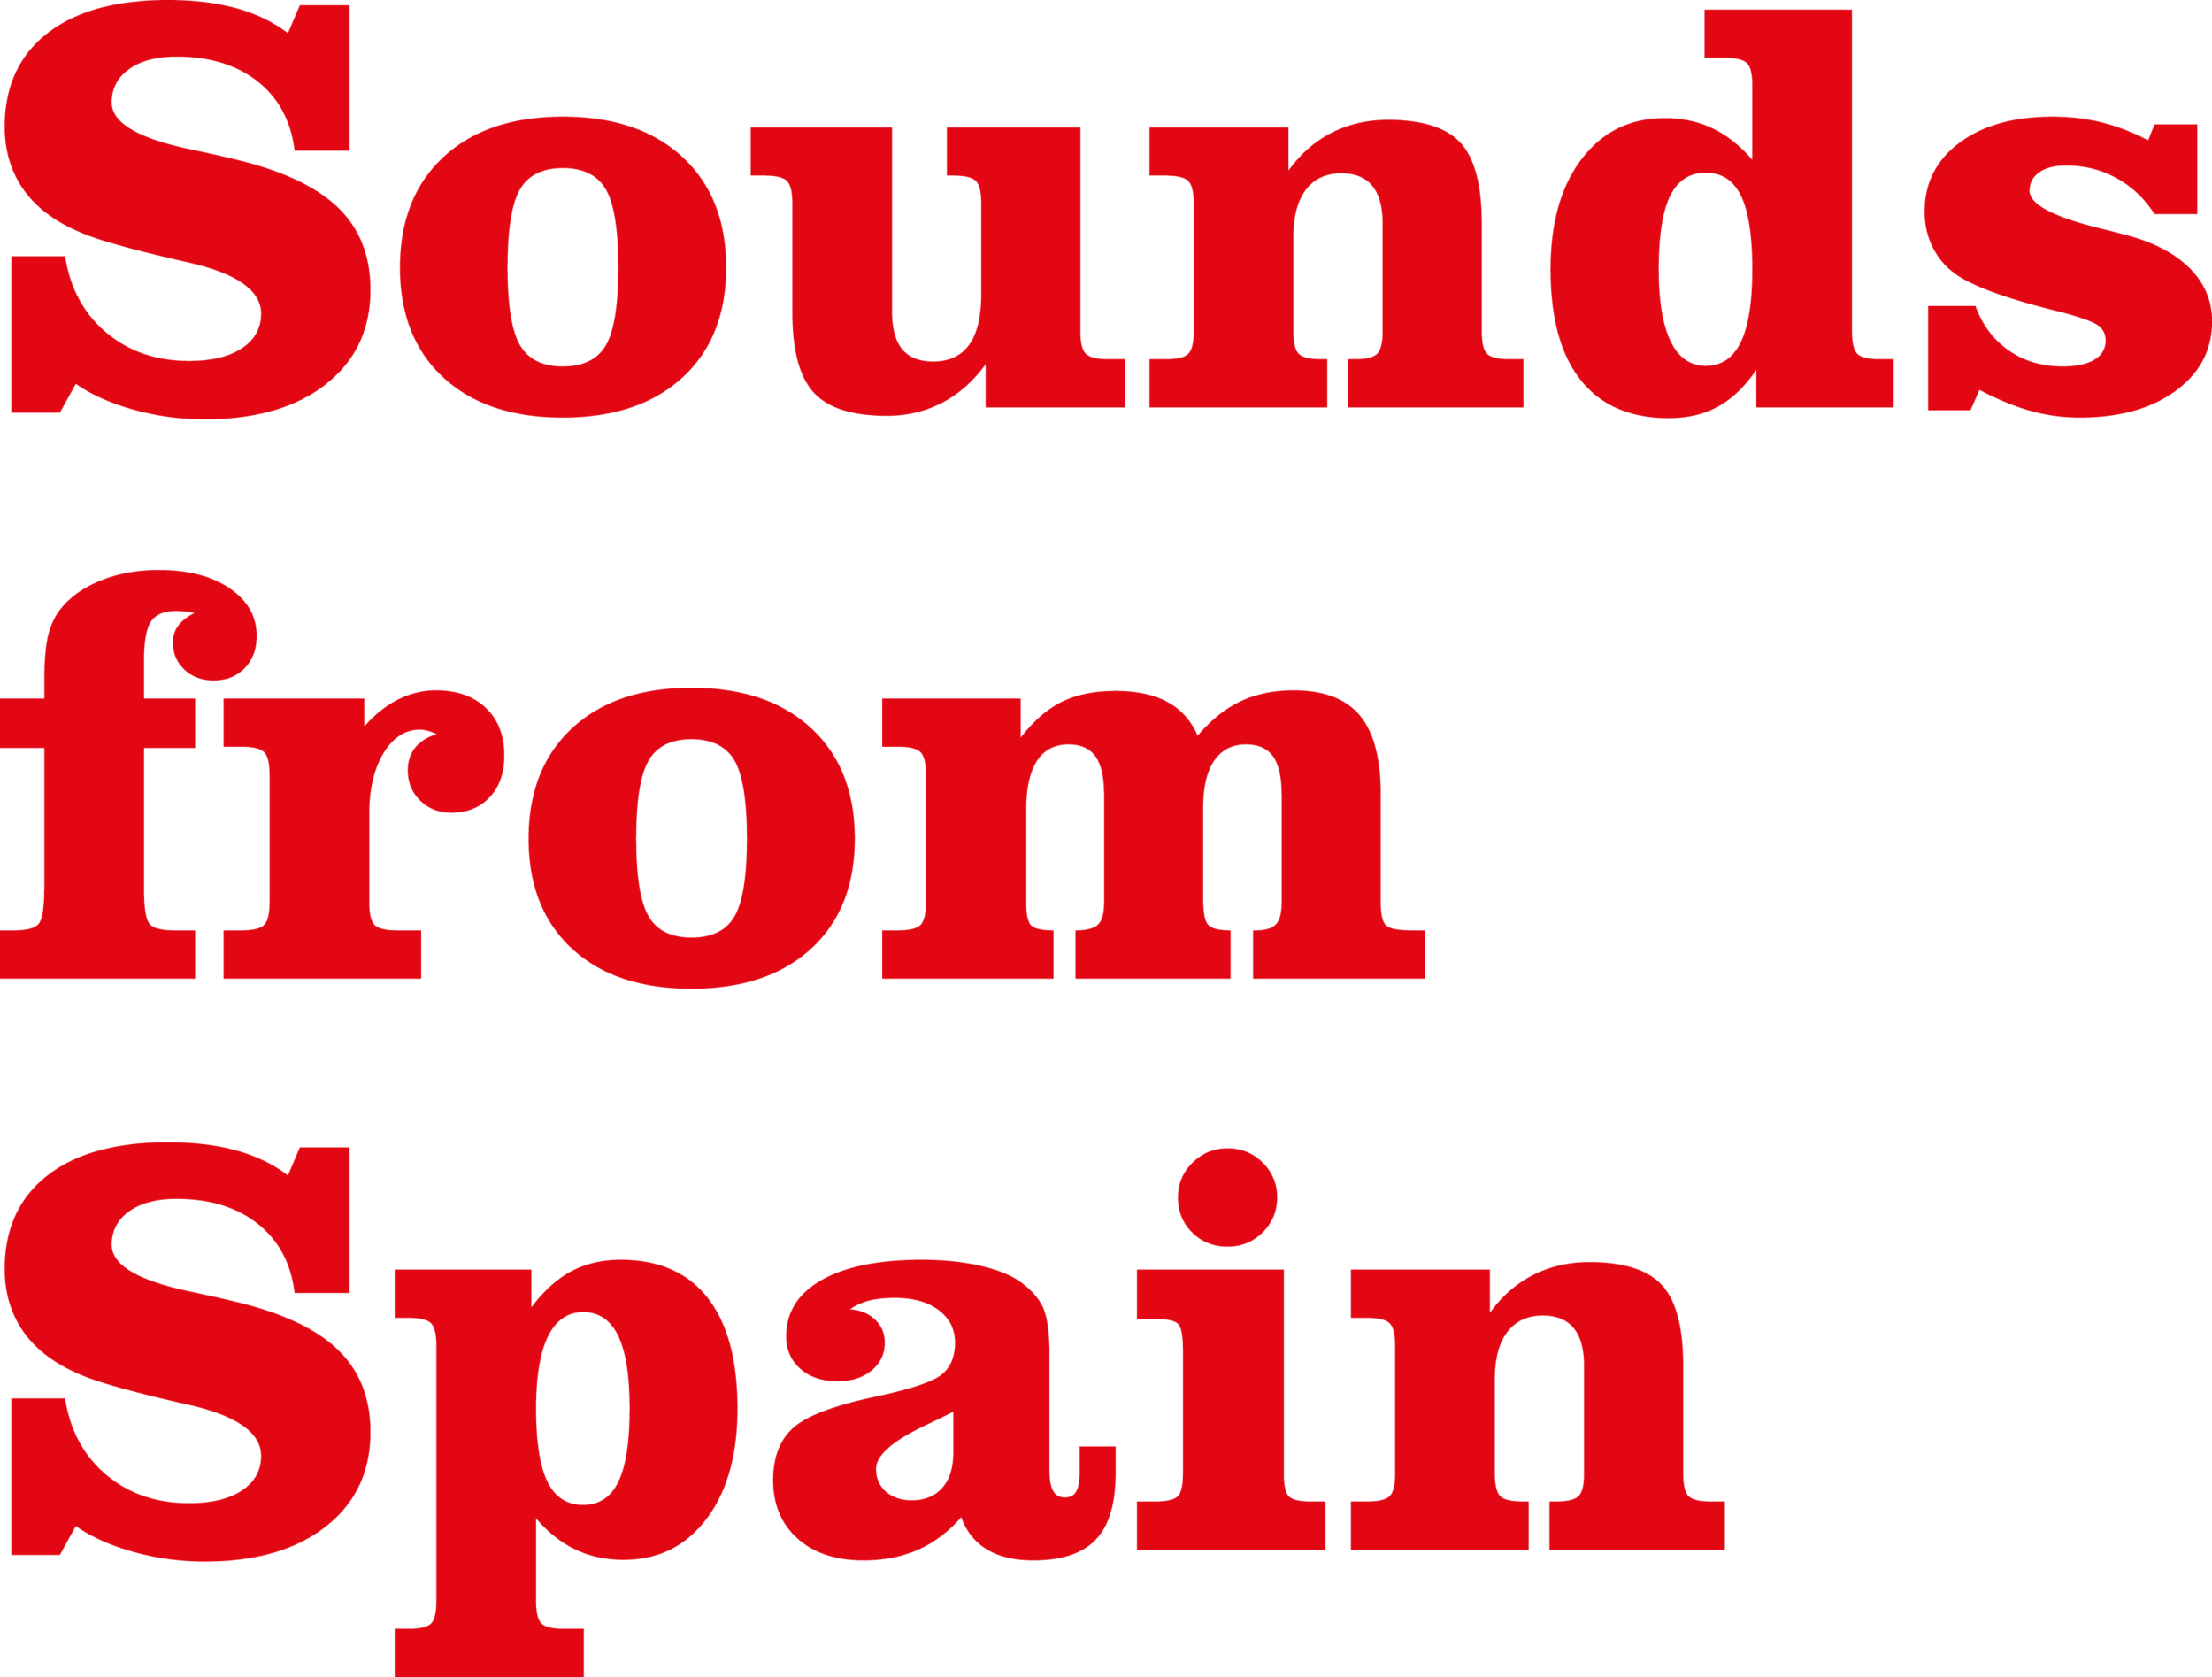 Sounds from Spain.png